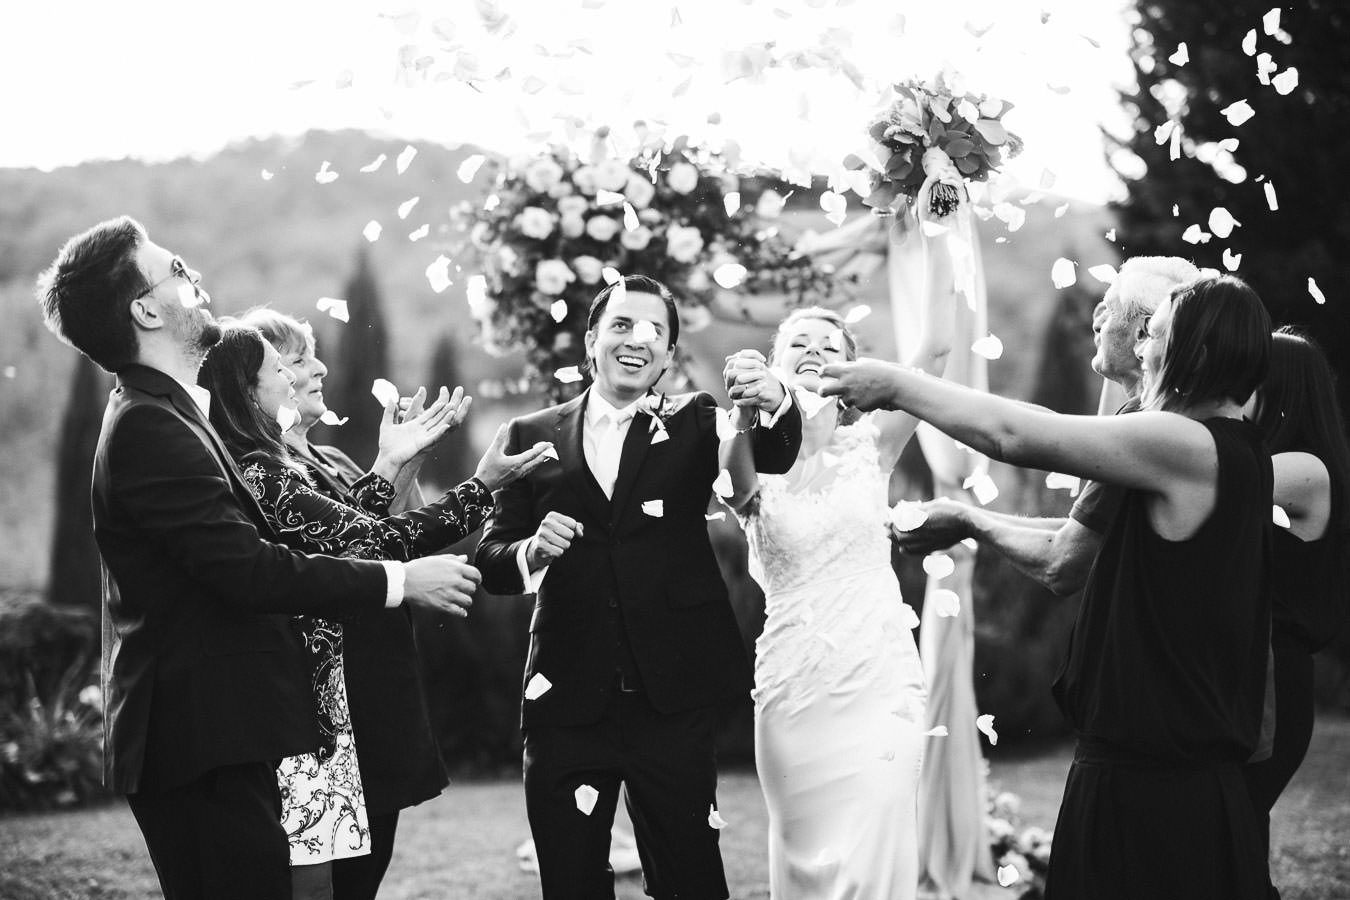 Exciting moment during petal throw for Bride Shauna in Kelly Faetanini wedding gown and groom Luis Enrique